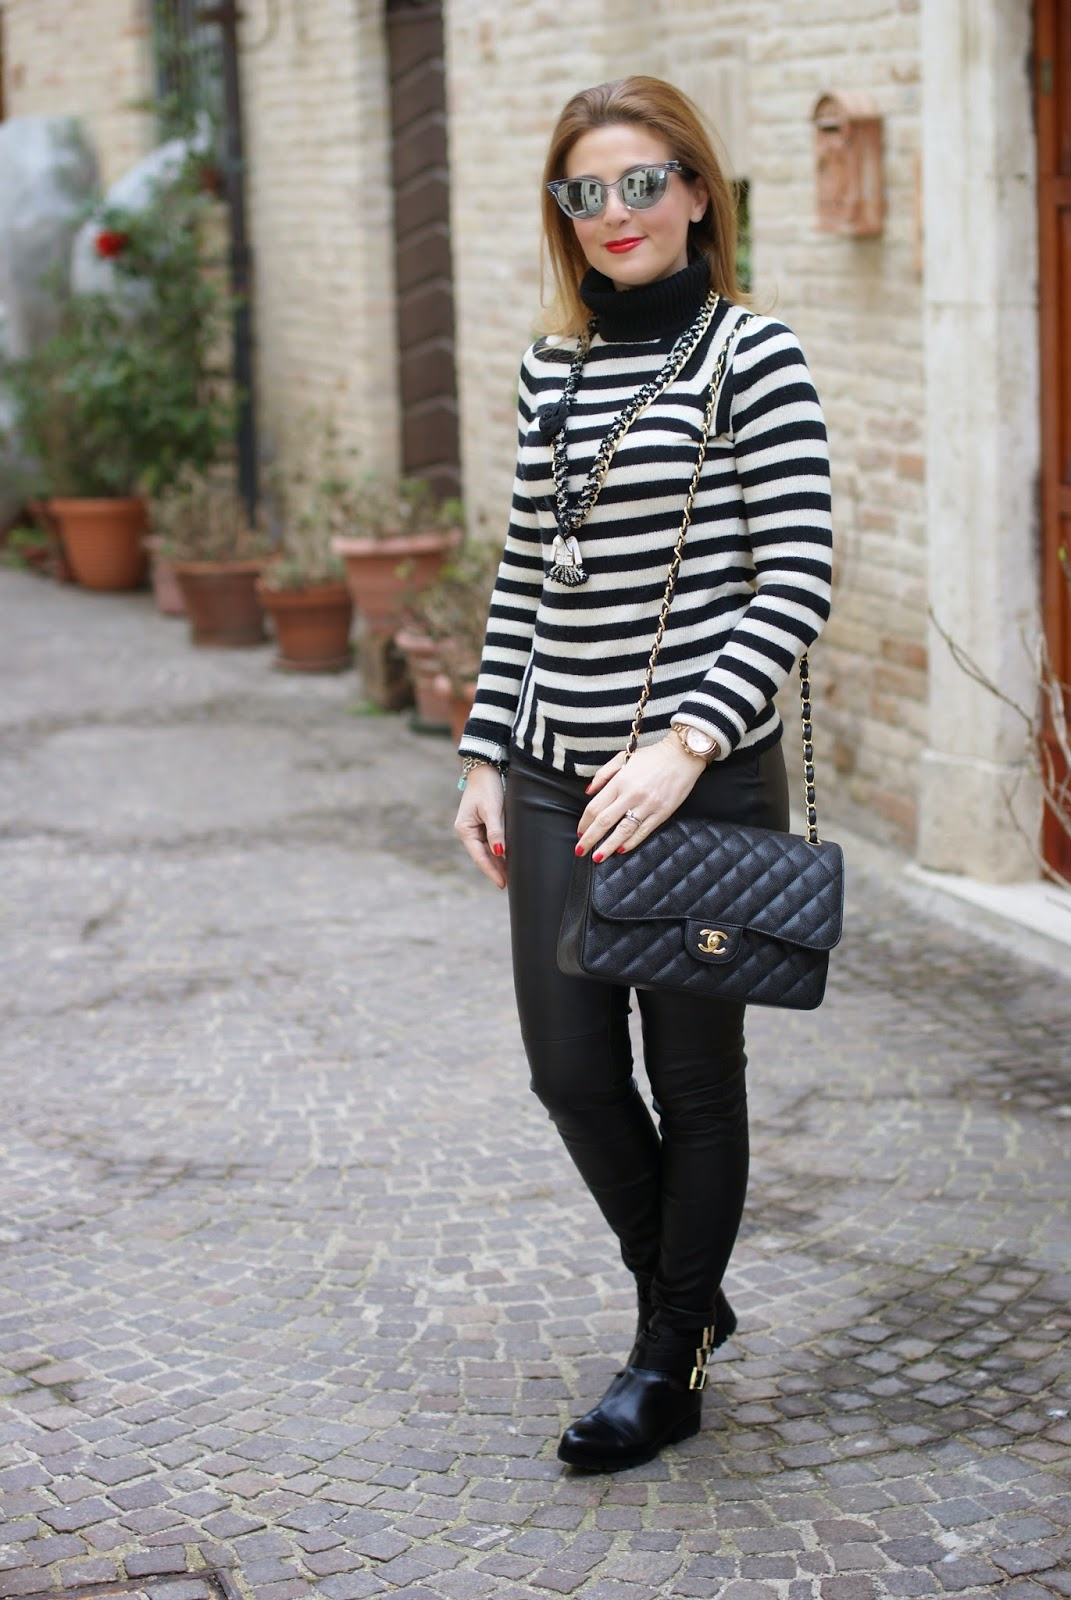 Chanel style, leather pants, Chanel 2.55 bag, striped turtleneck, Fashion and Cookies, fashion blogger, fashion blog